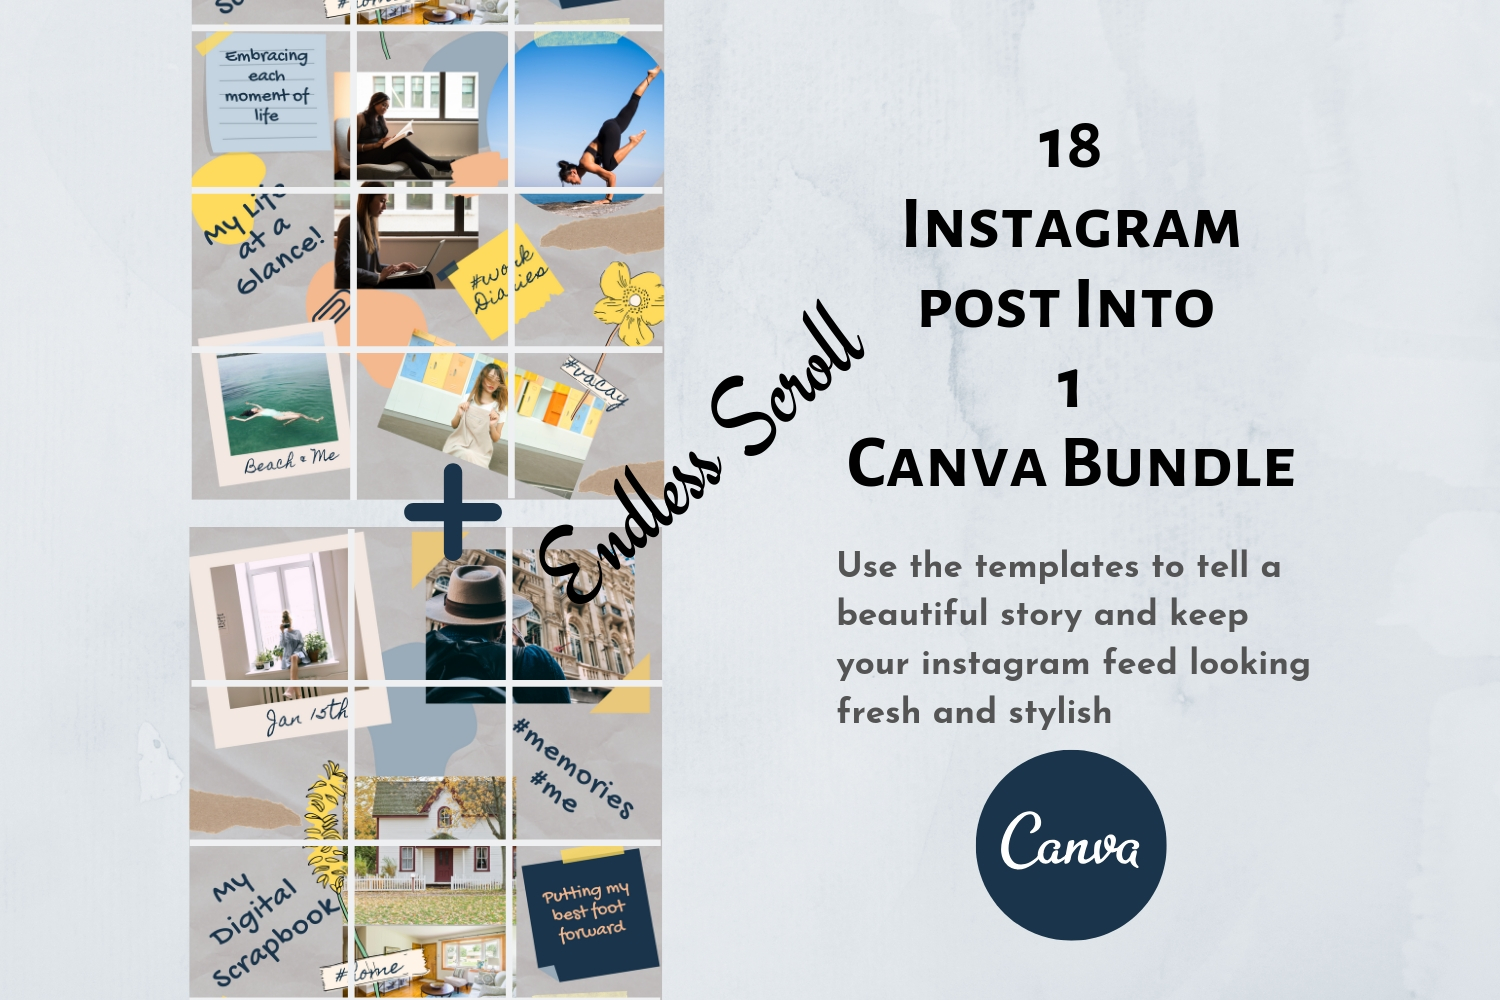 Instagram Puzzle Template Canva- My Scrapbook example image 4